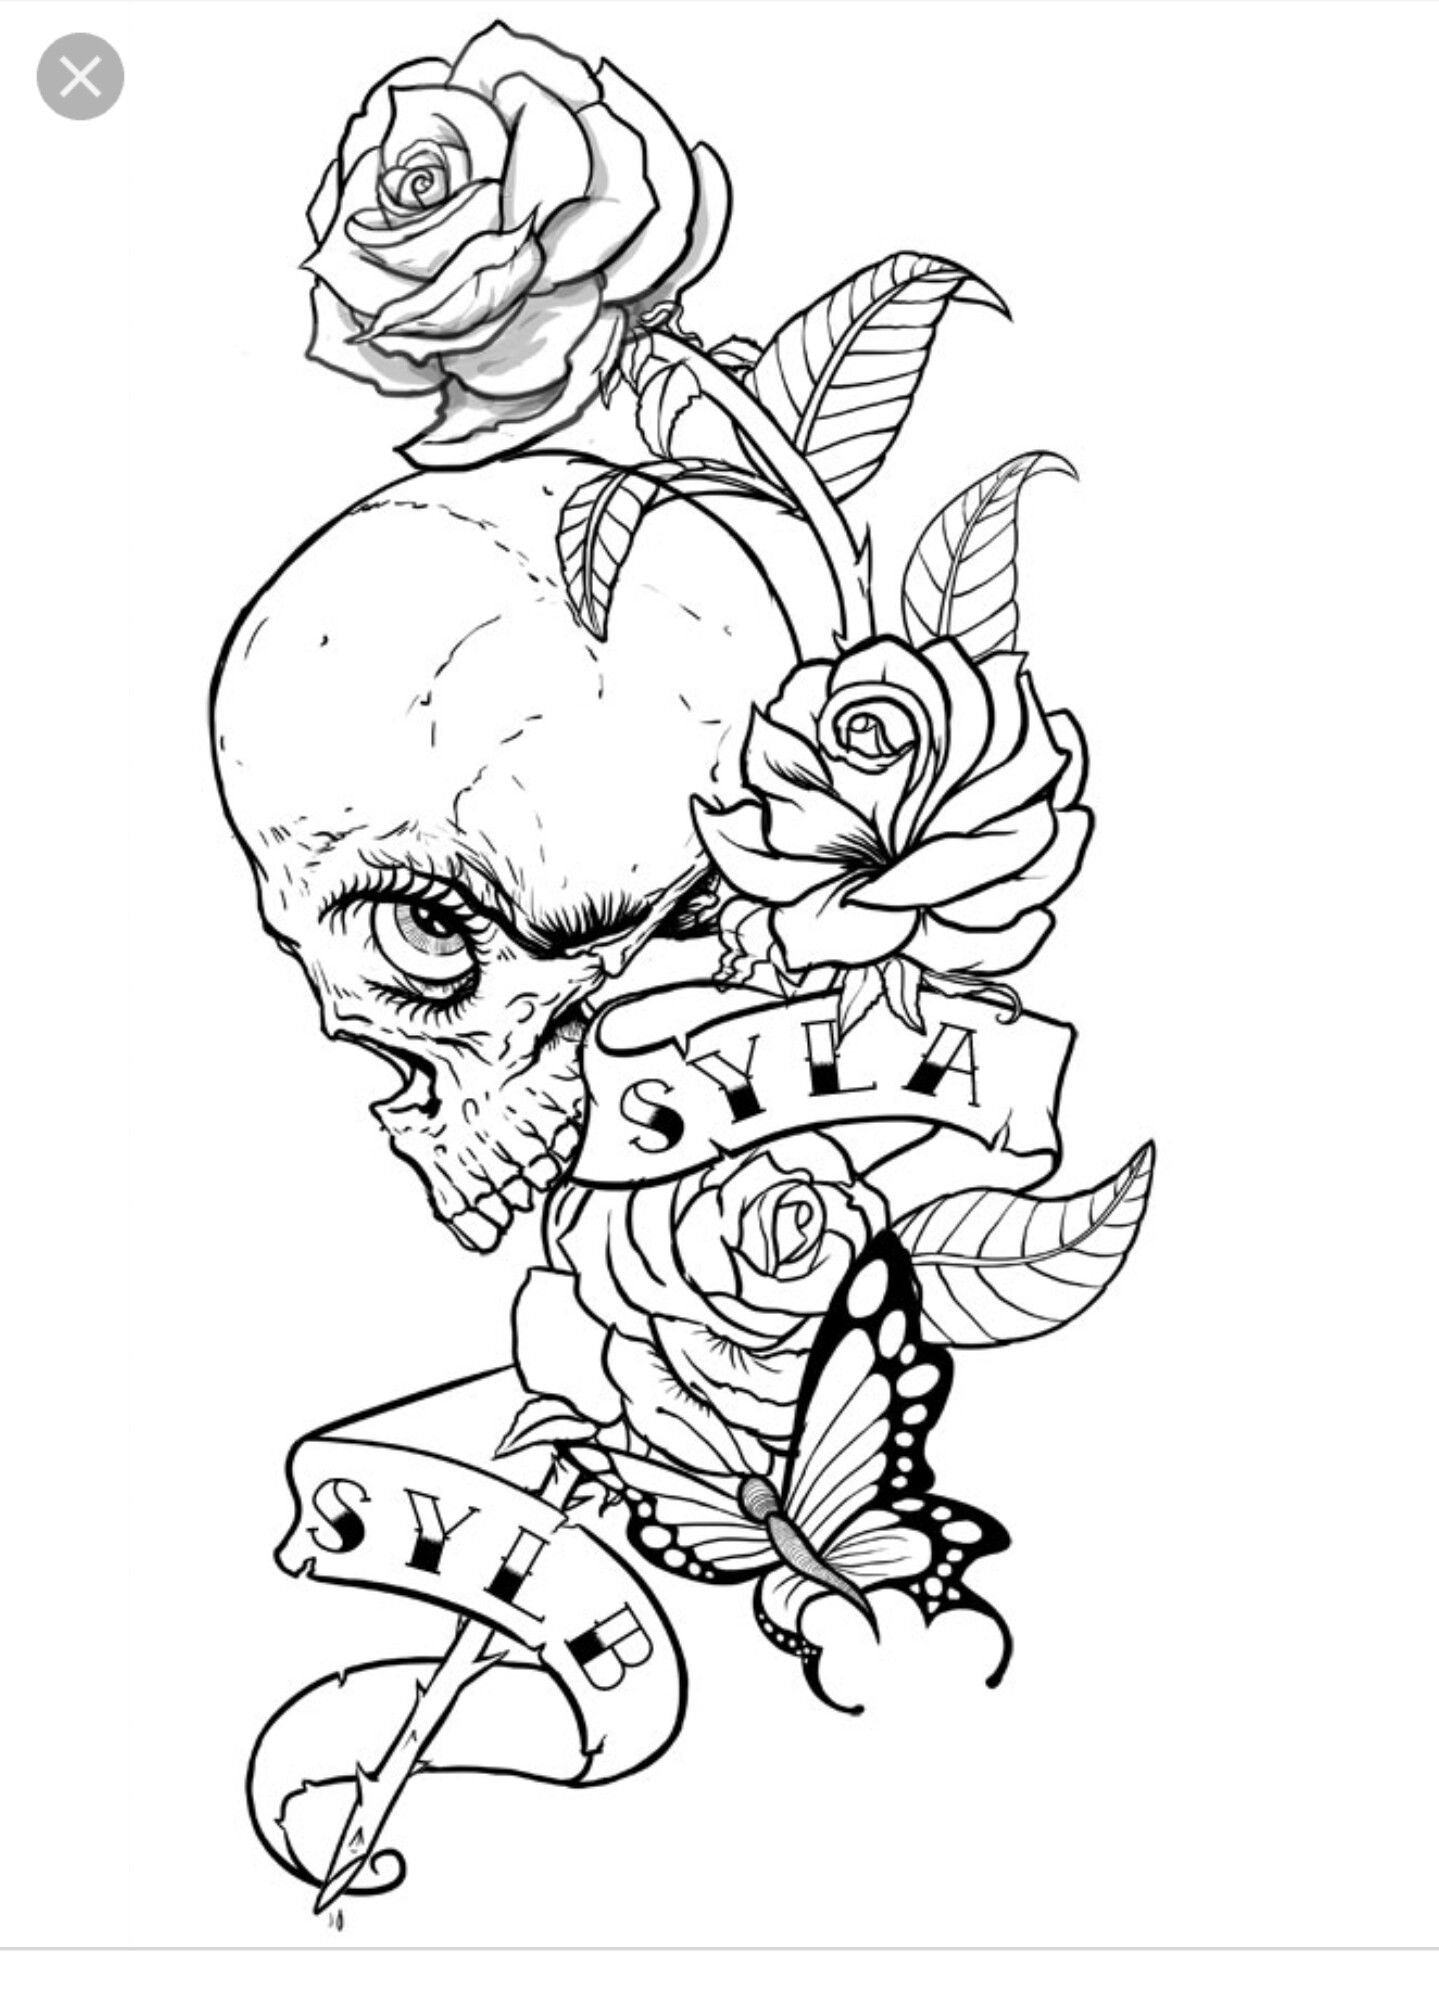 Pin By Womaninarmorandwarpaint On Skulls Skeletons Skull Coloring Pages Unicorn Coloring Pages Coloring Pages